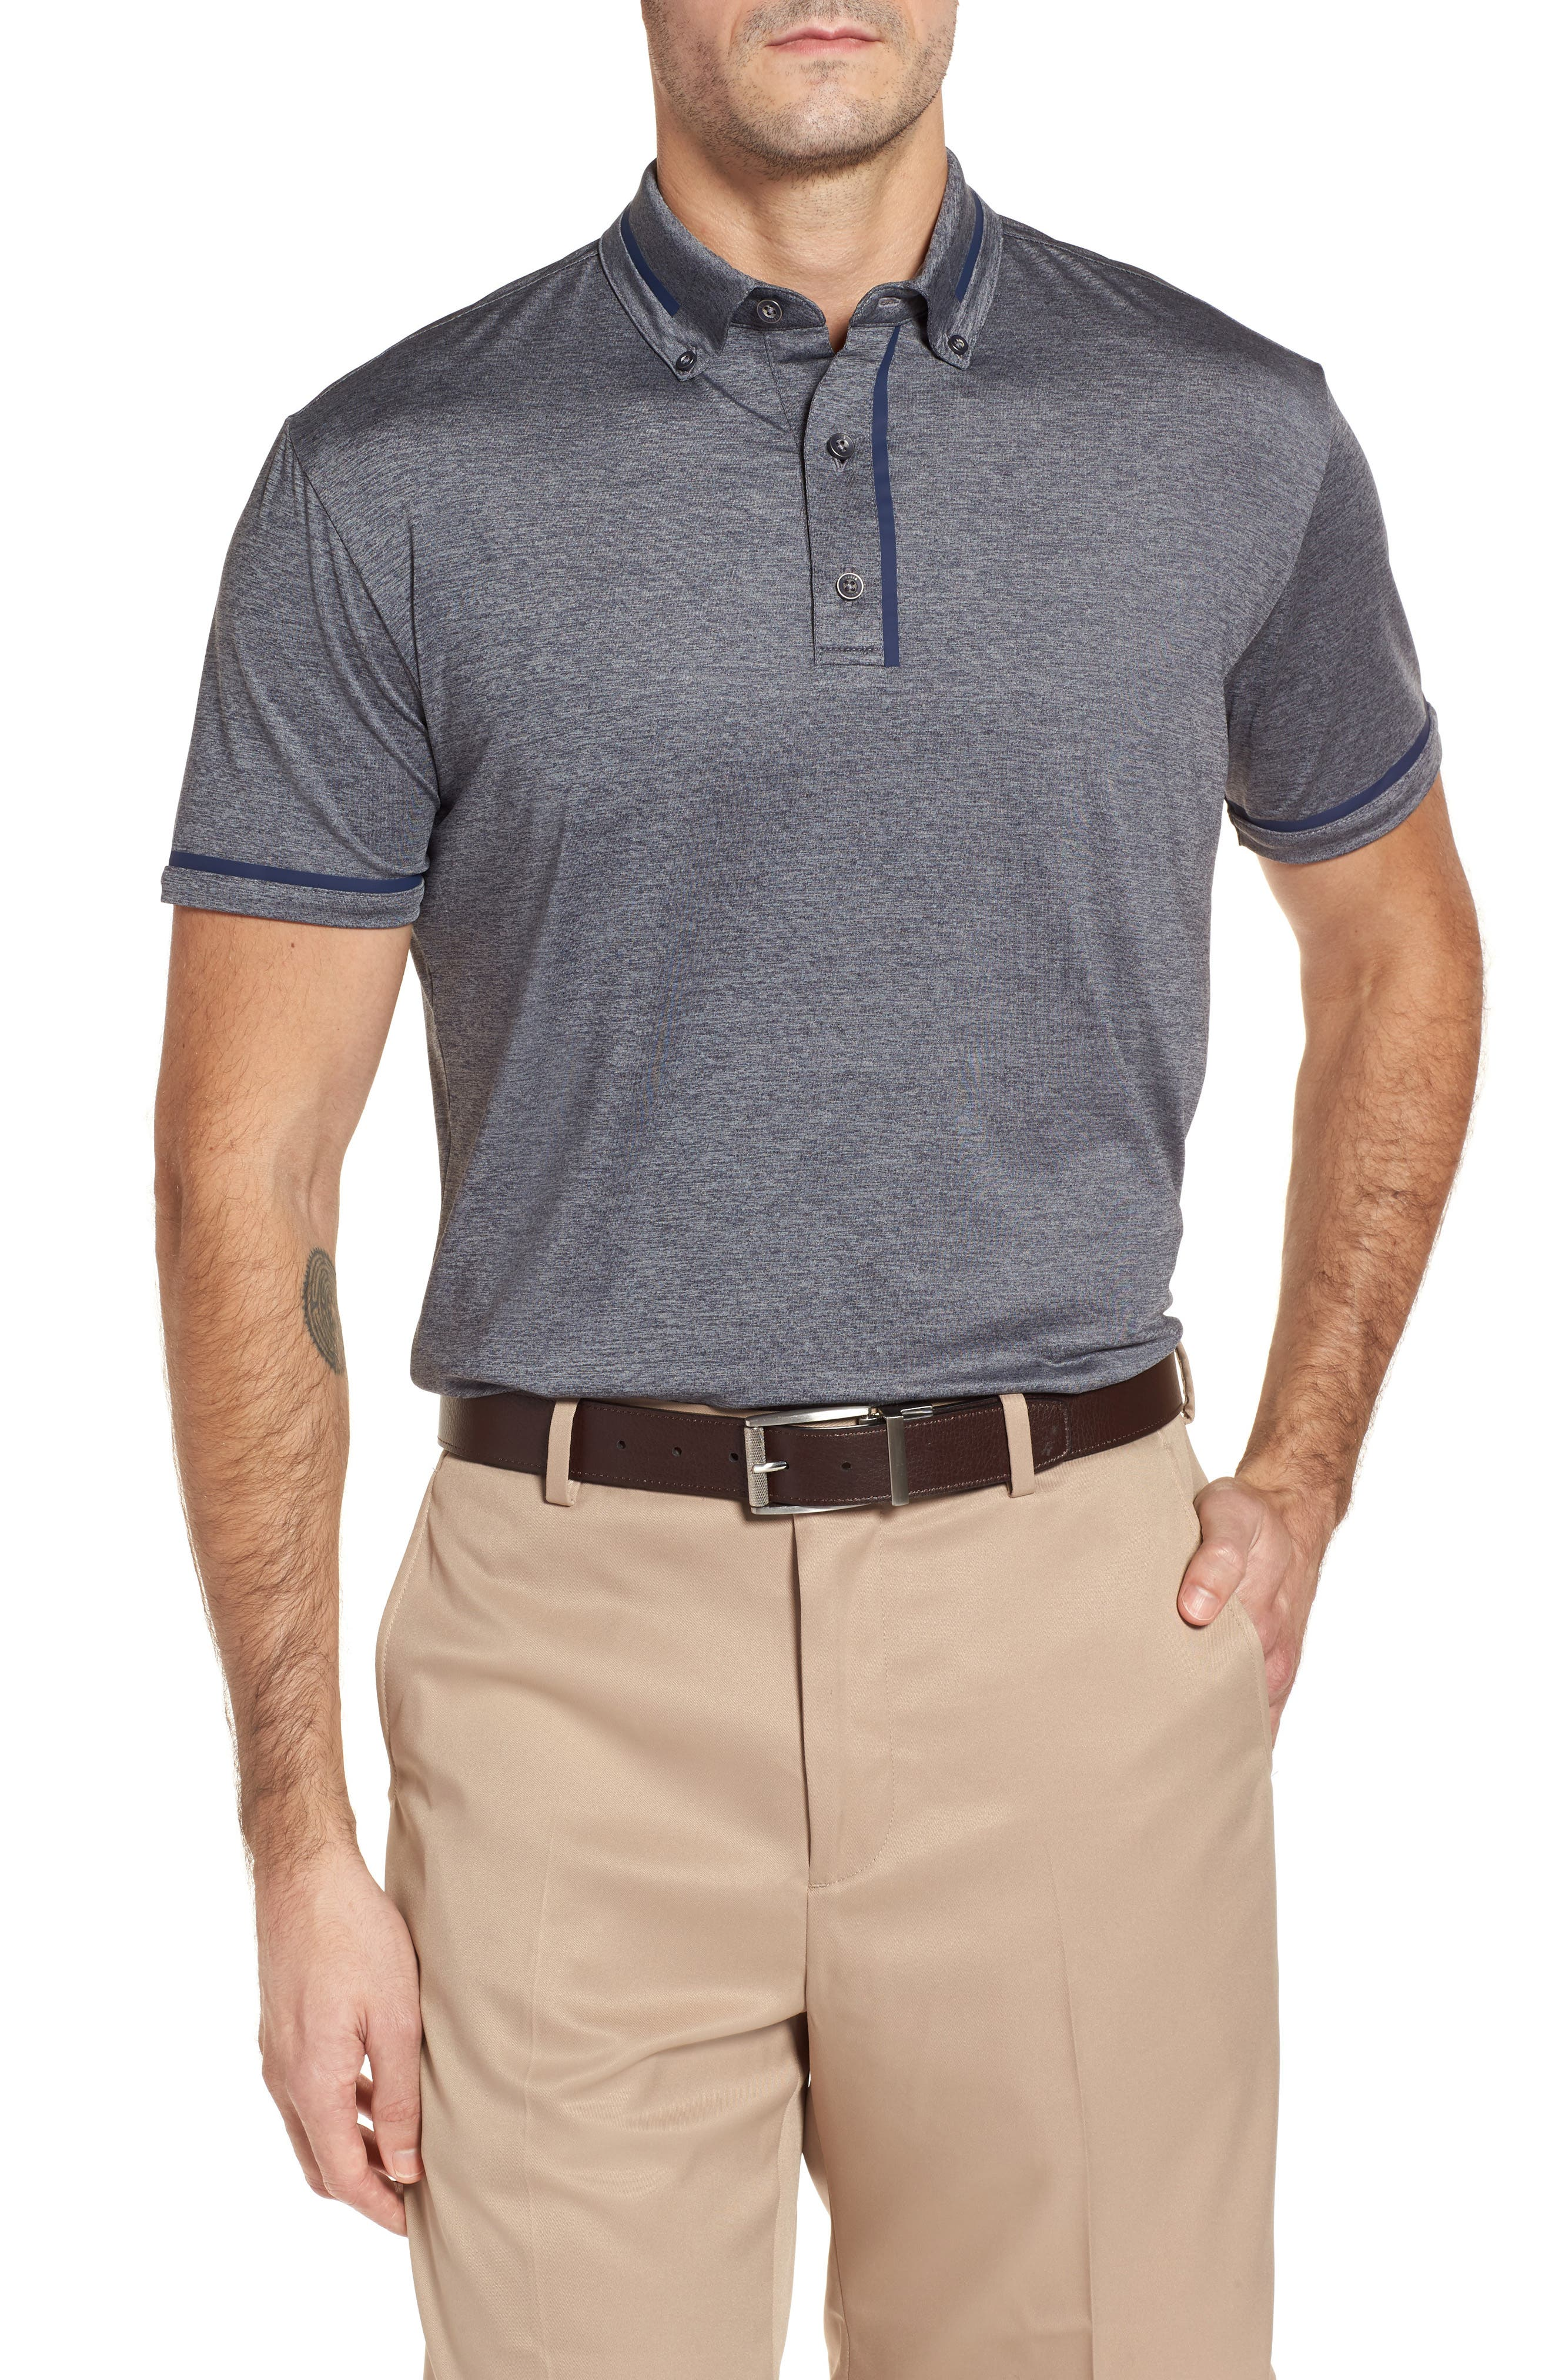 Main Image - Bobby Jones R18 Tech Chapman Welded Trim Polo